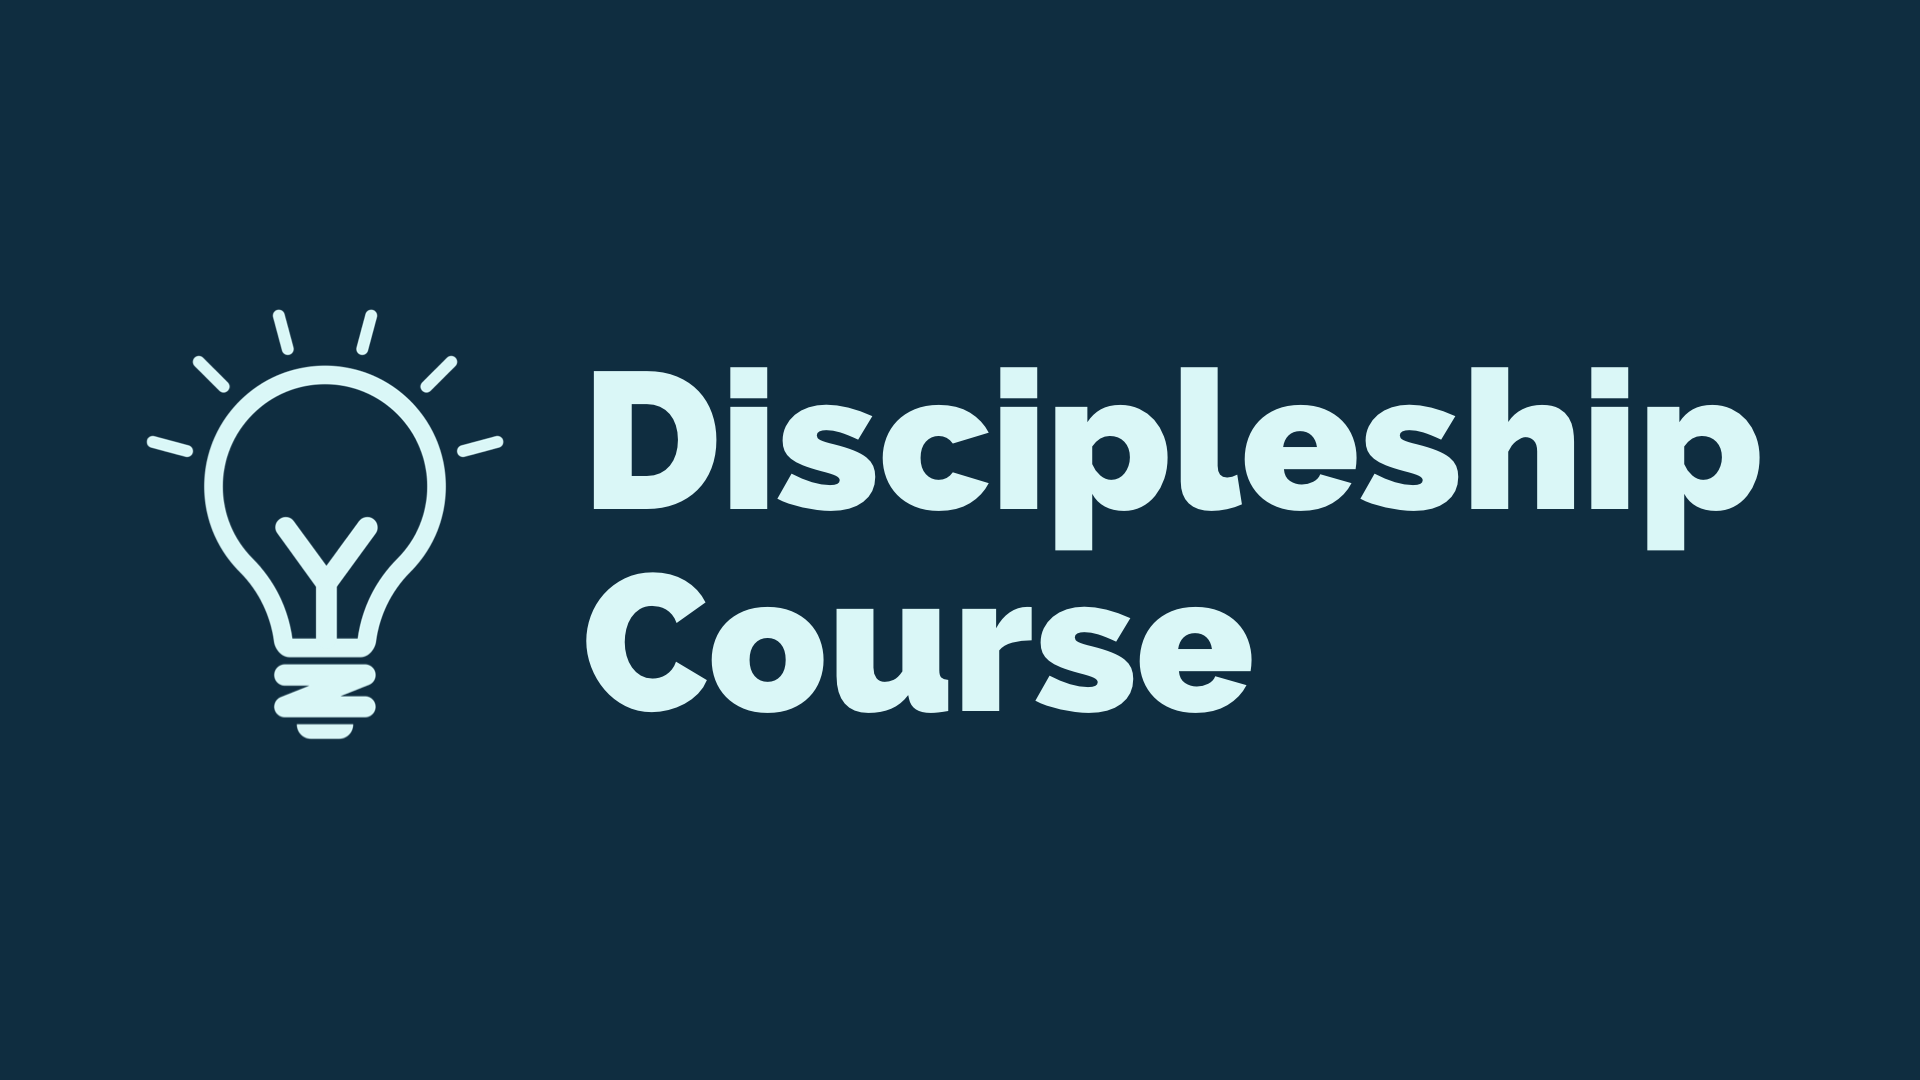 Discipleship Course - no dates GS